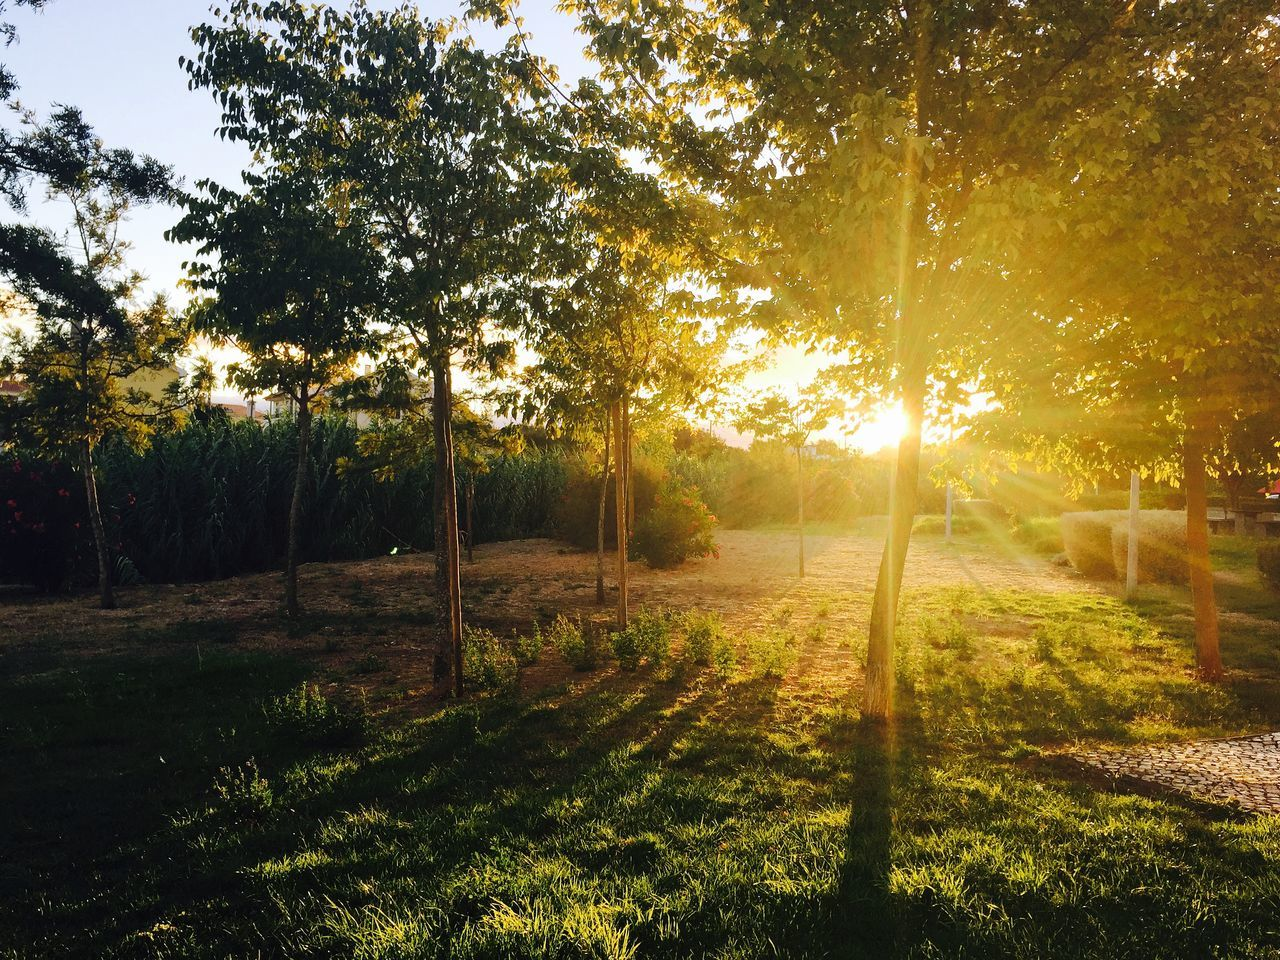 Trees Growing On Grassy Field Against Bright Sun At Sunset